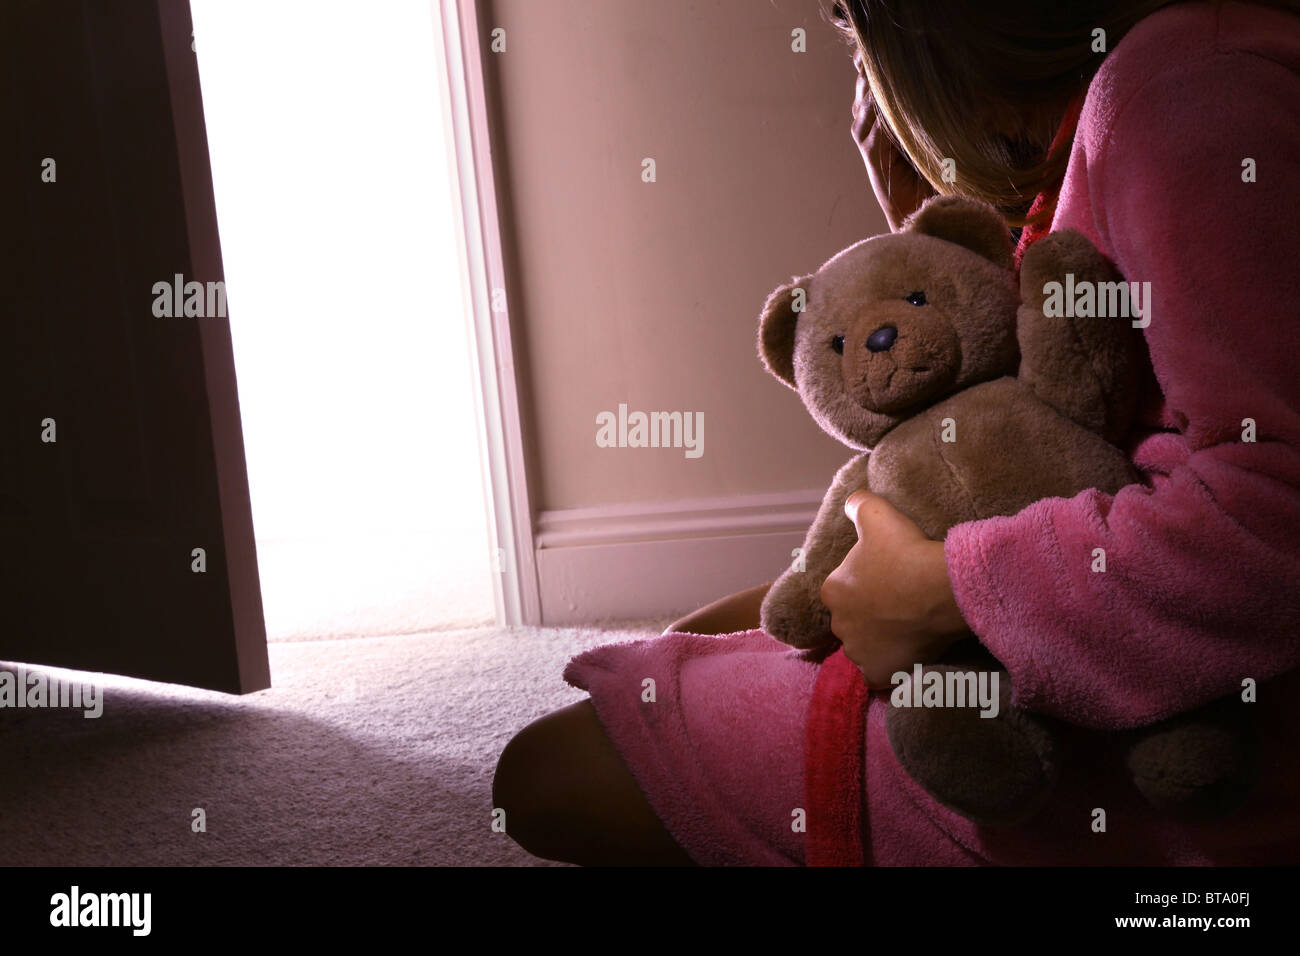 Young girl sitting holding a teddy bear, back view. - Stock Image